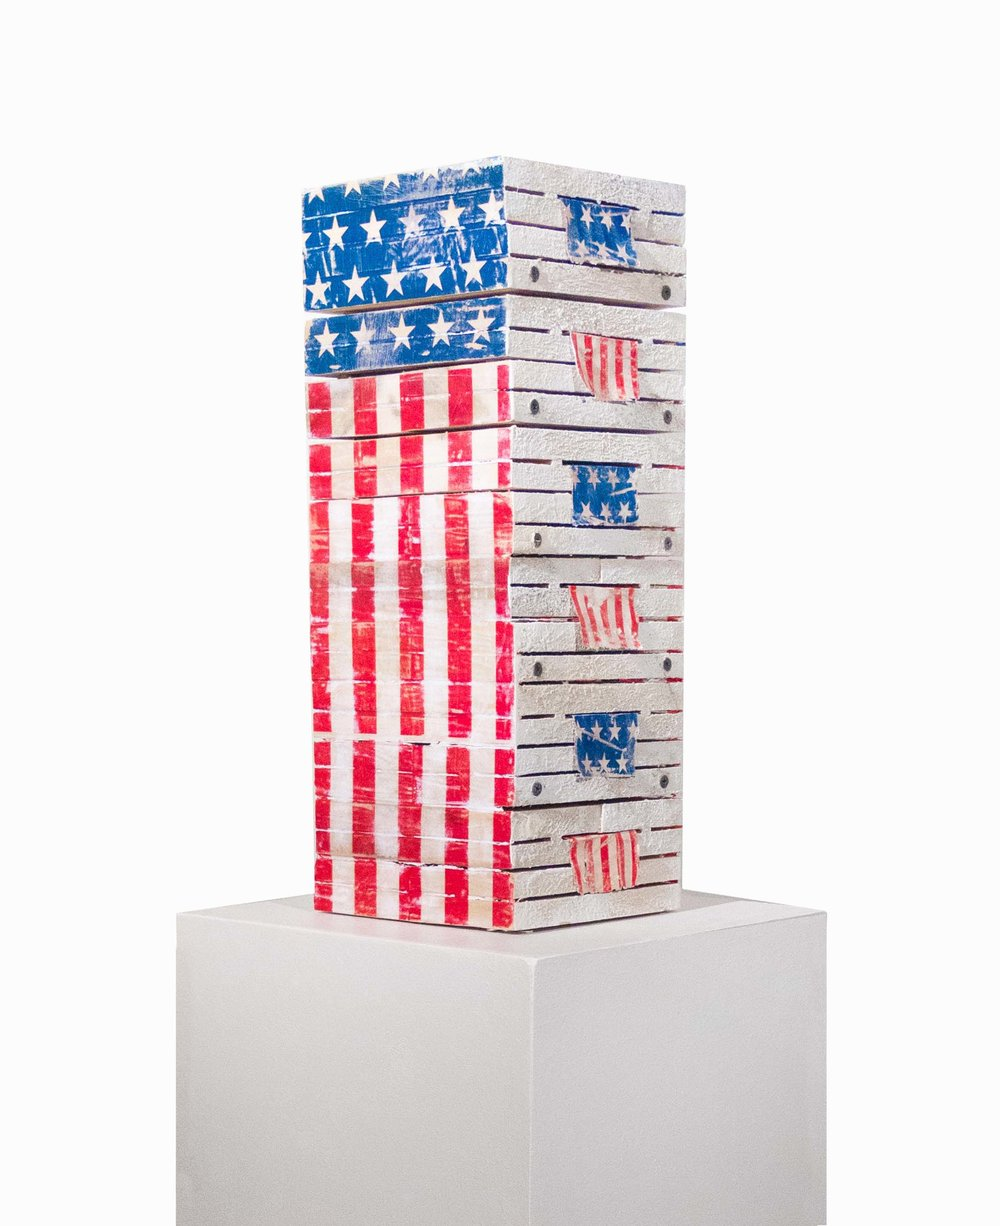 "Stacked, 2016  28""x13""x13"" wood, metal, encaustic, acrylic paint, paper"